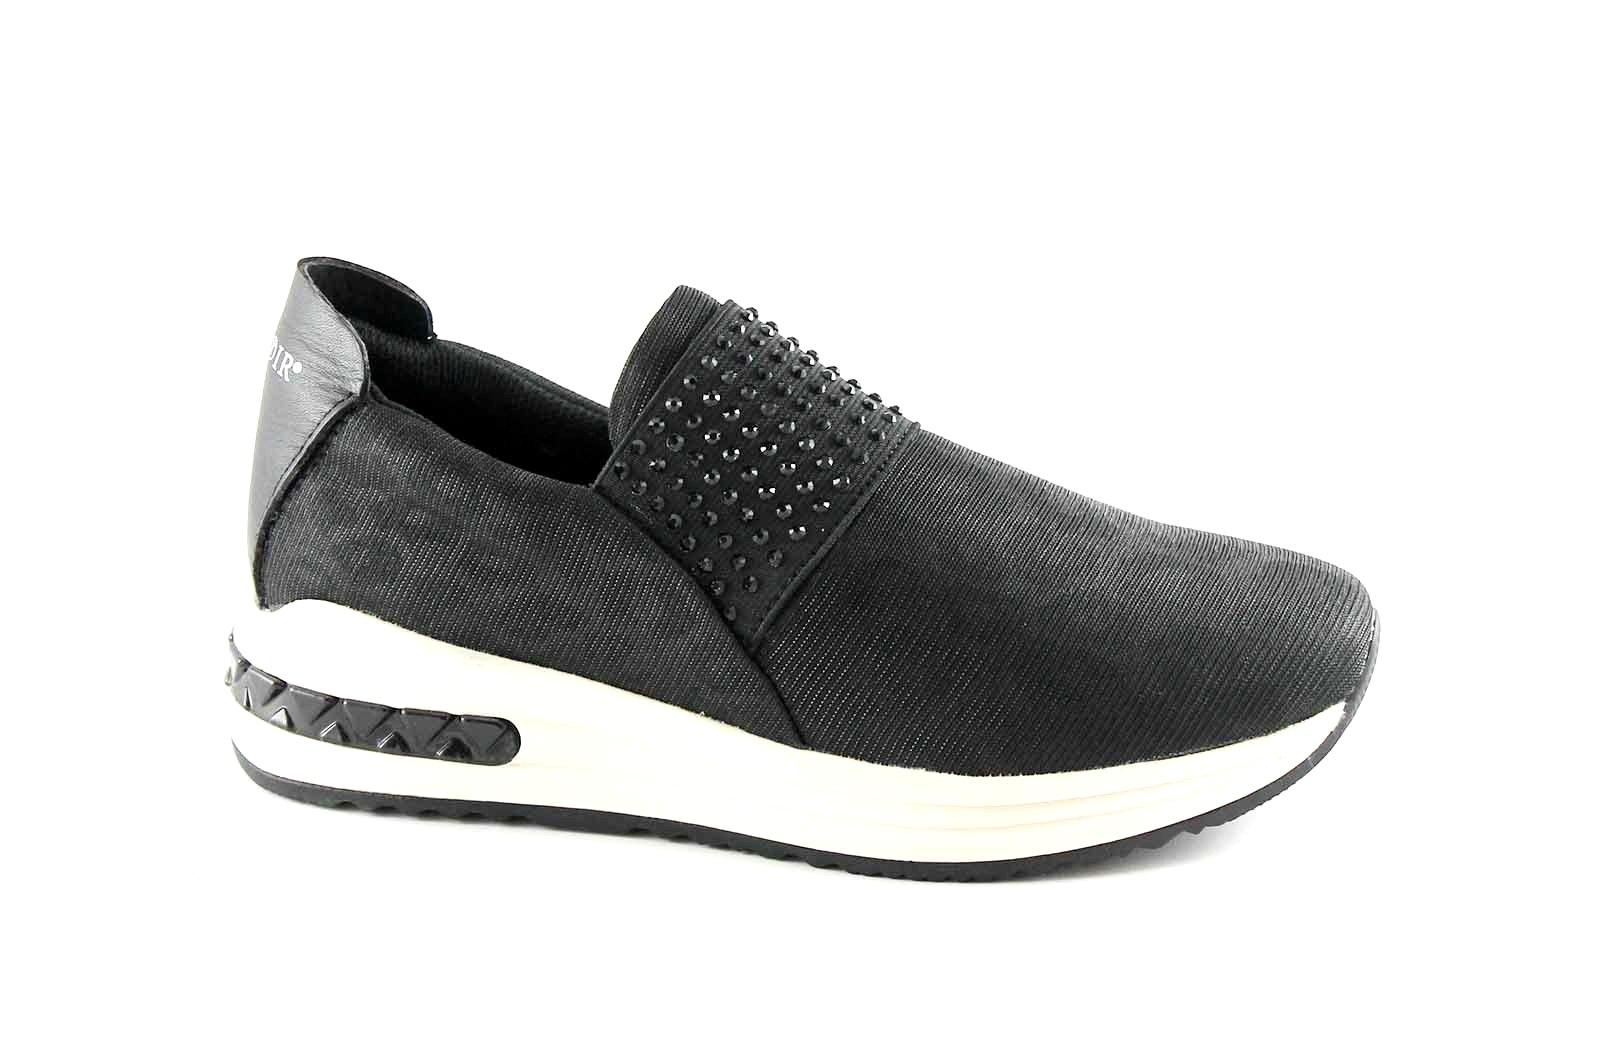 CAFè NOIR DA903 nero scarpe donna sheakers basse slip on elastico